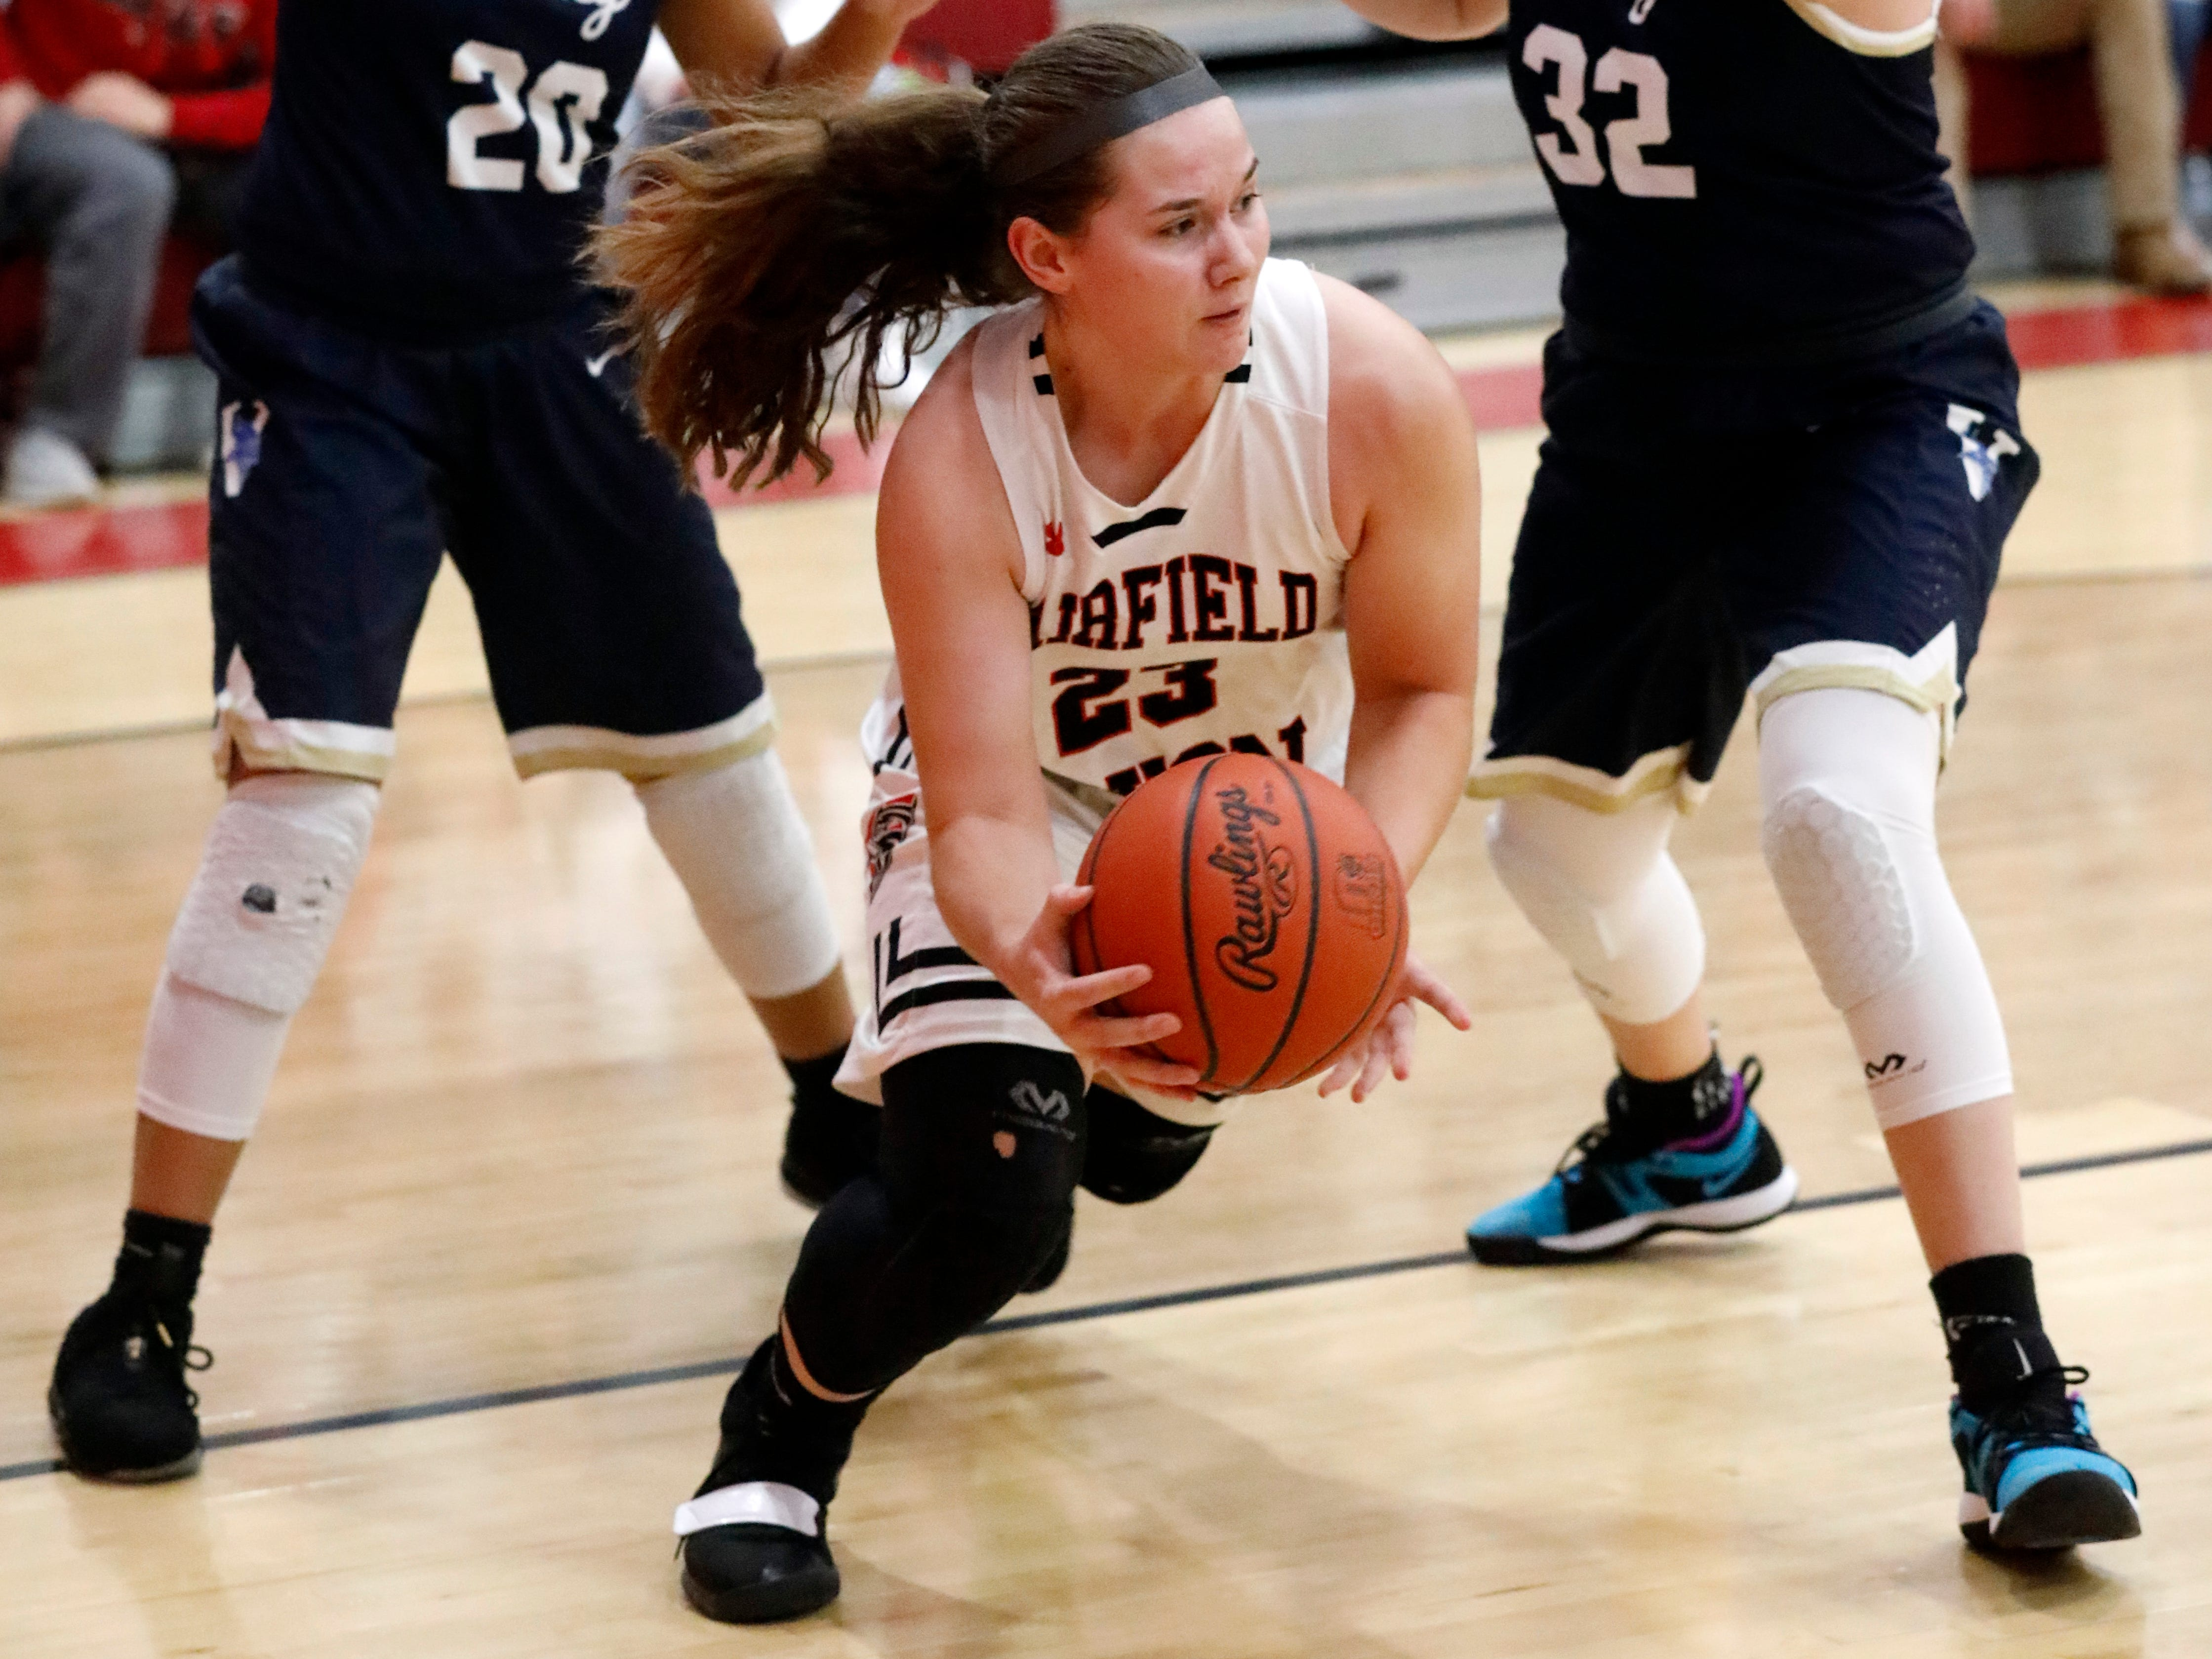 Fairfield Union's Marisa Malone drives through the alley Friday night, Jan. 25, 2019, against Teays Valley at Fairfield Union High School in Rushville. The Falcons lost the game 67-42.